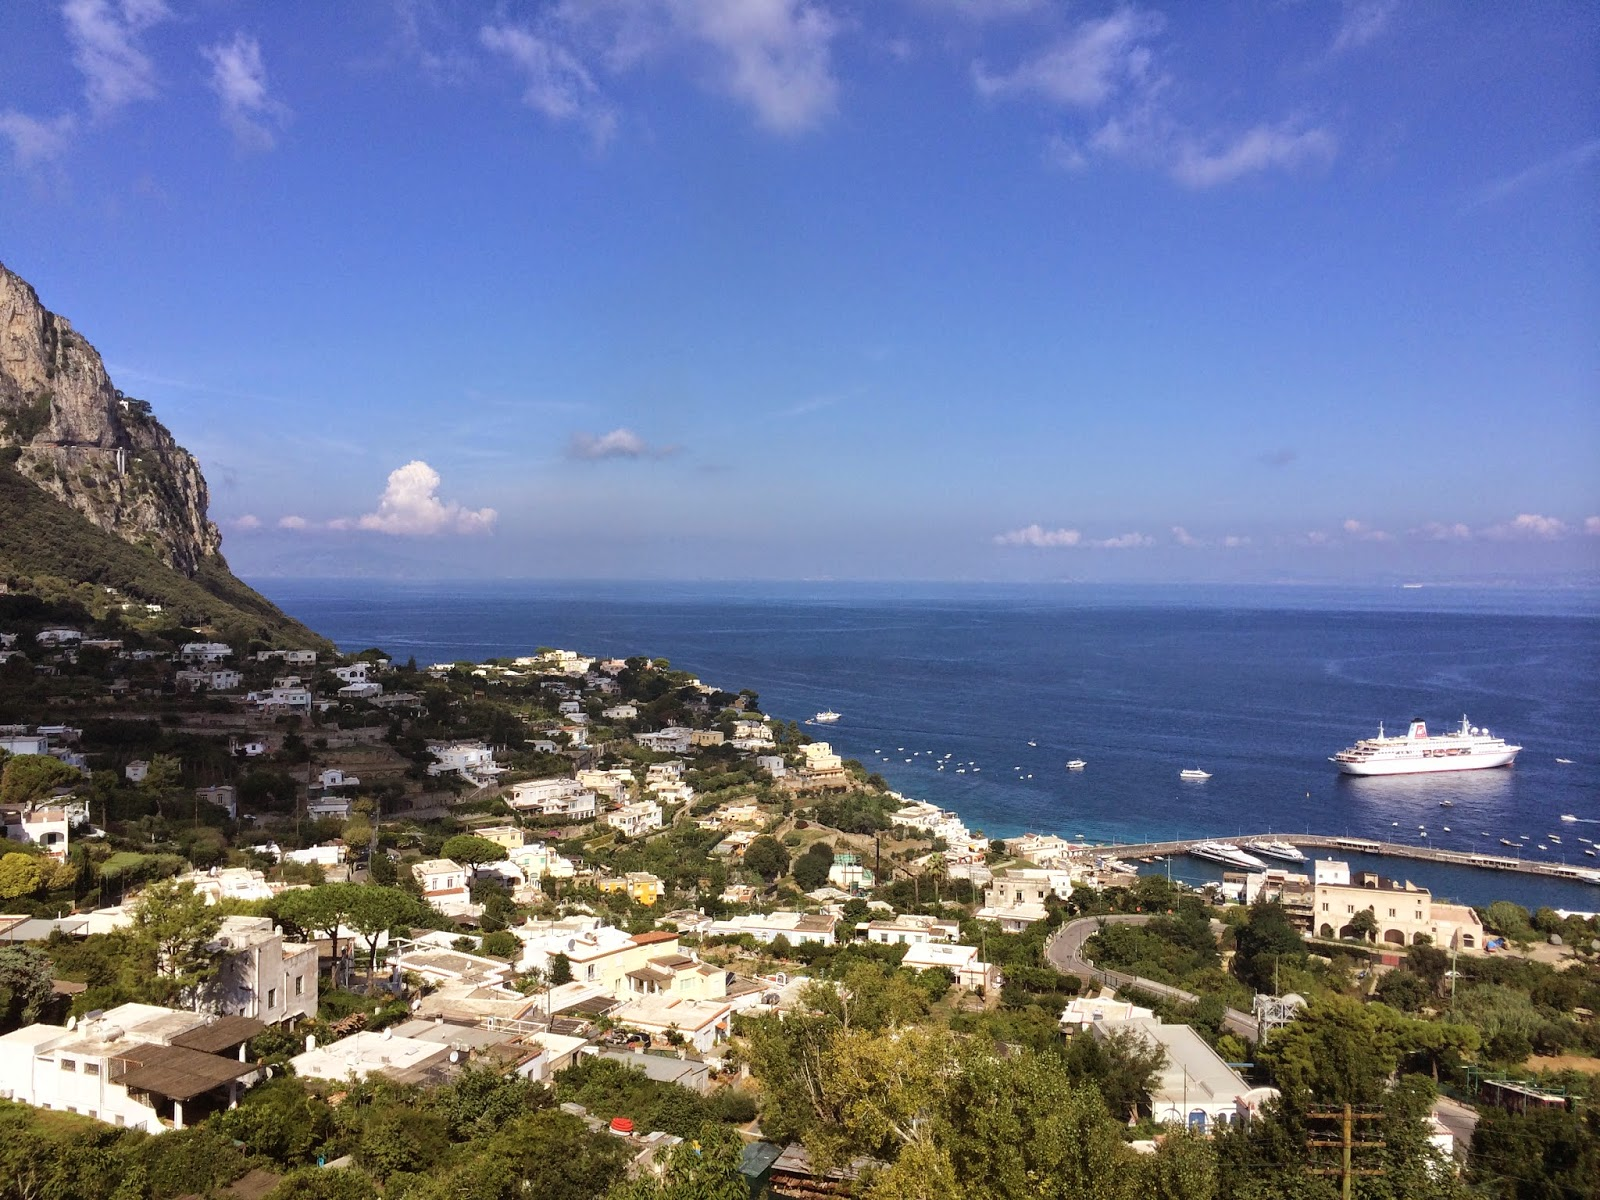 View-from-the-hills-in-capri